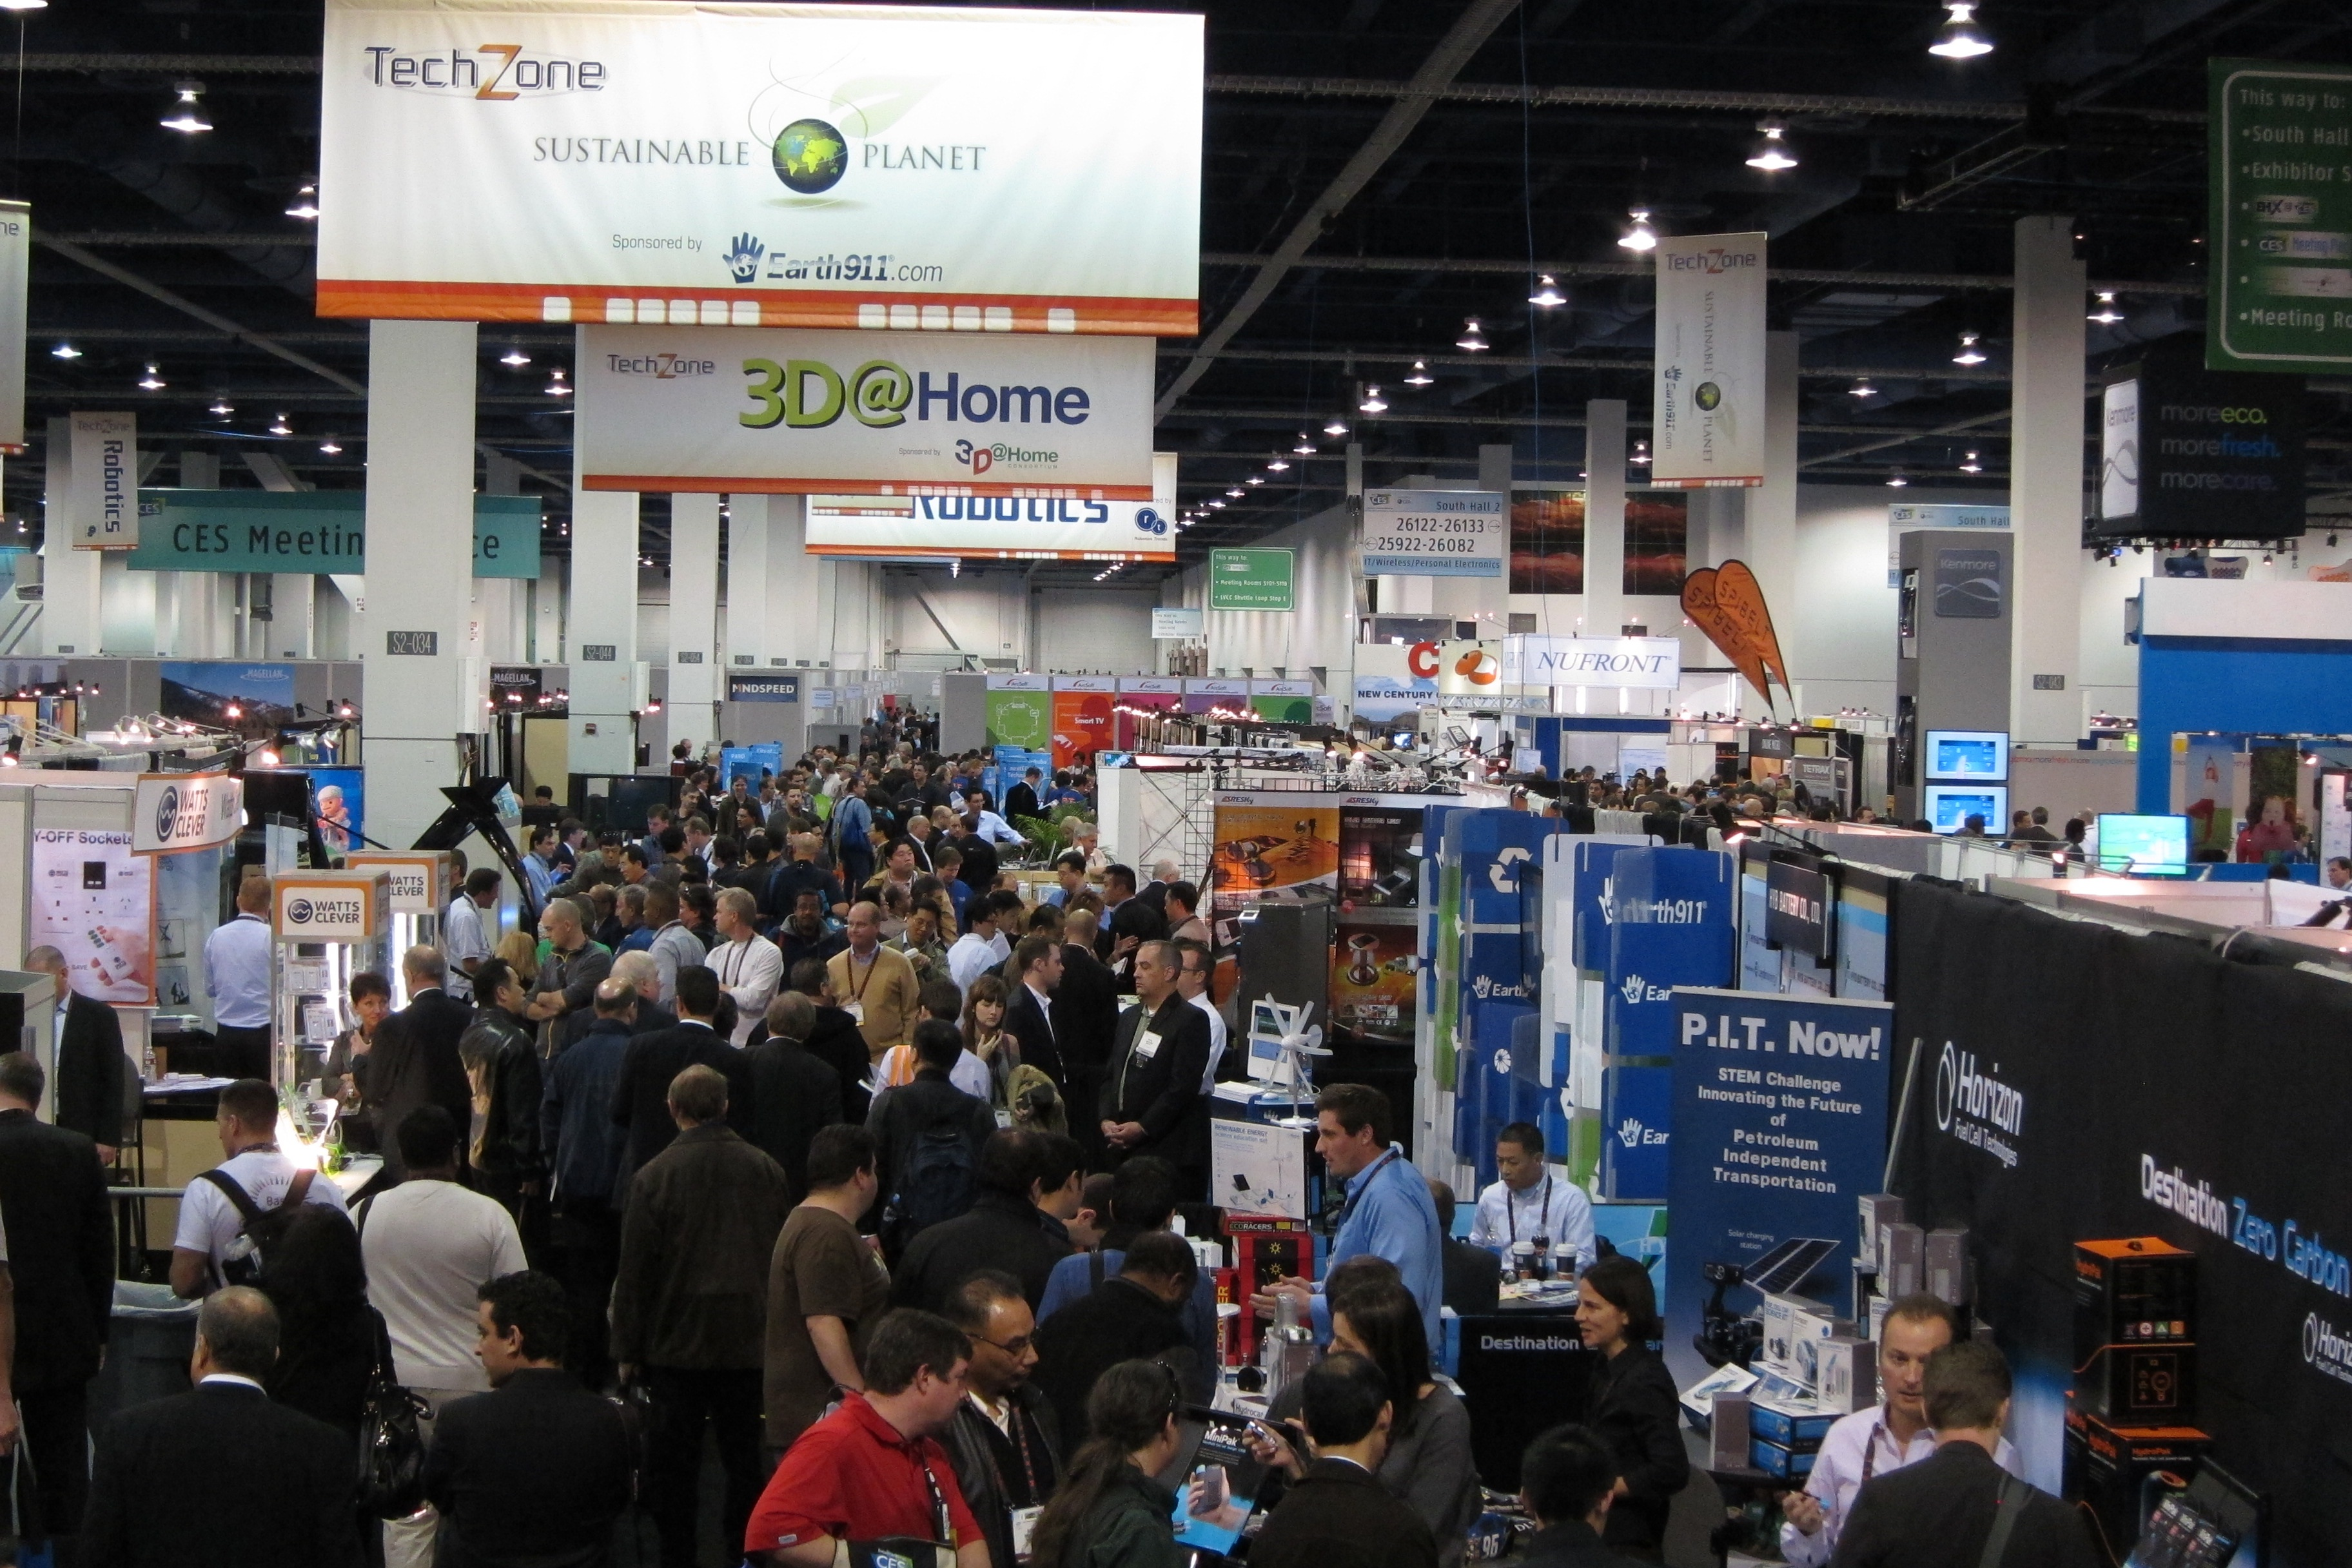 CES 2011 Wrap-up